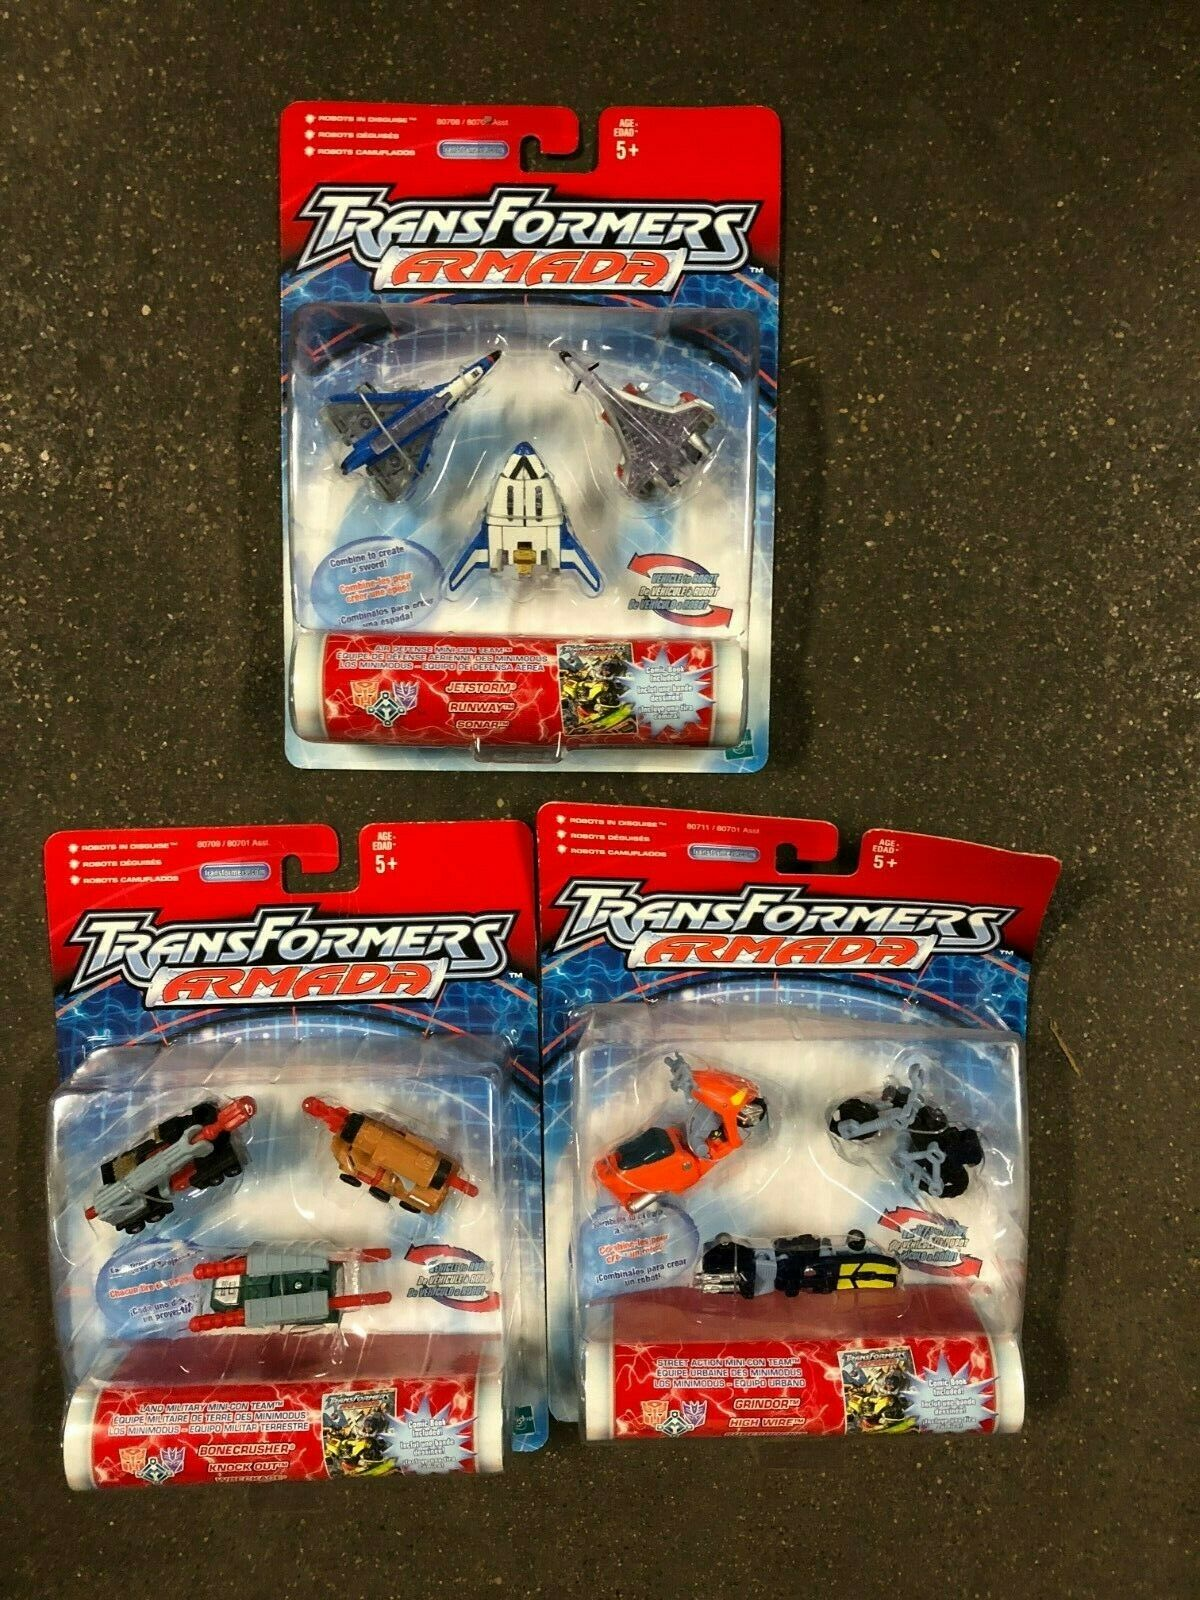 Hasbro Transformers Robots In Disguise Armada Lot of 3 Toys NEW in package